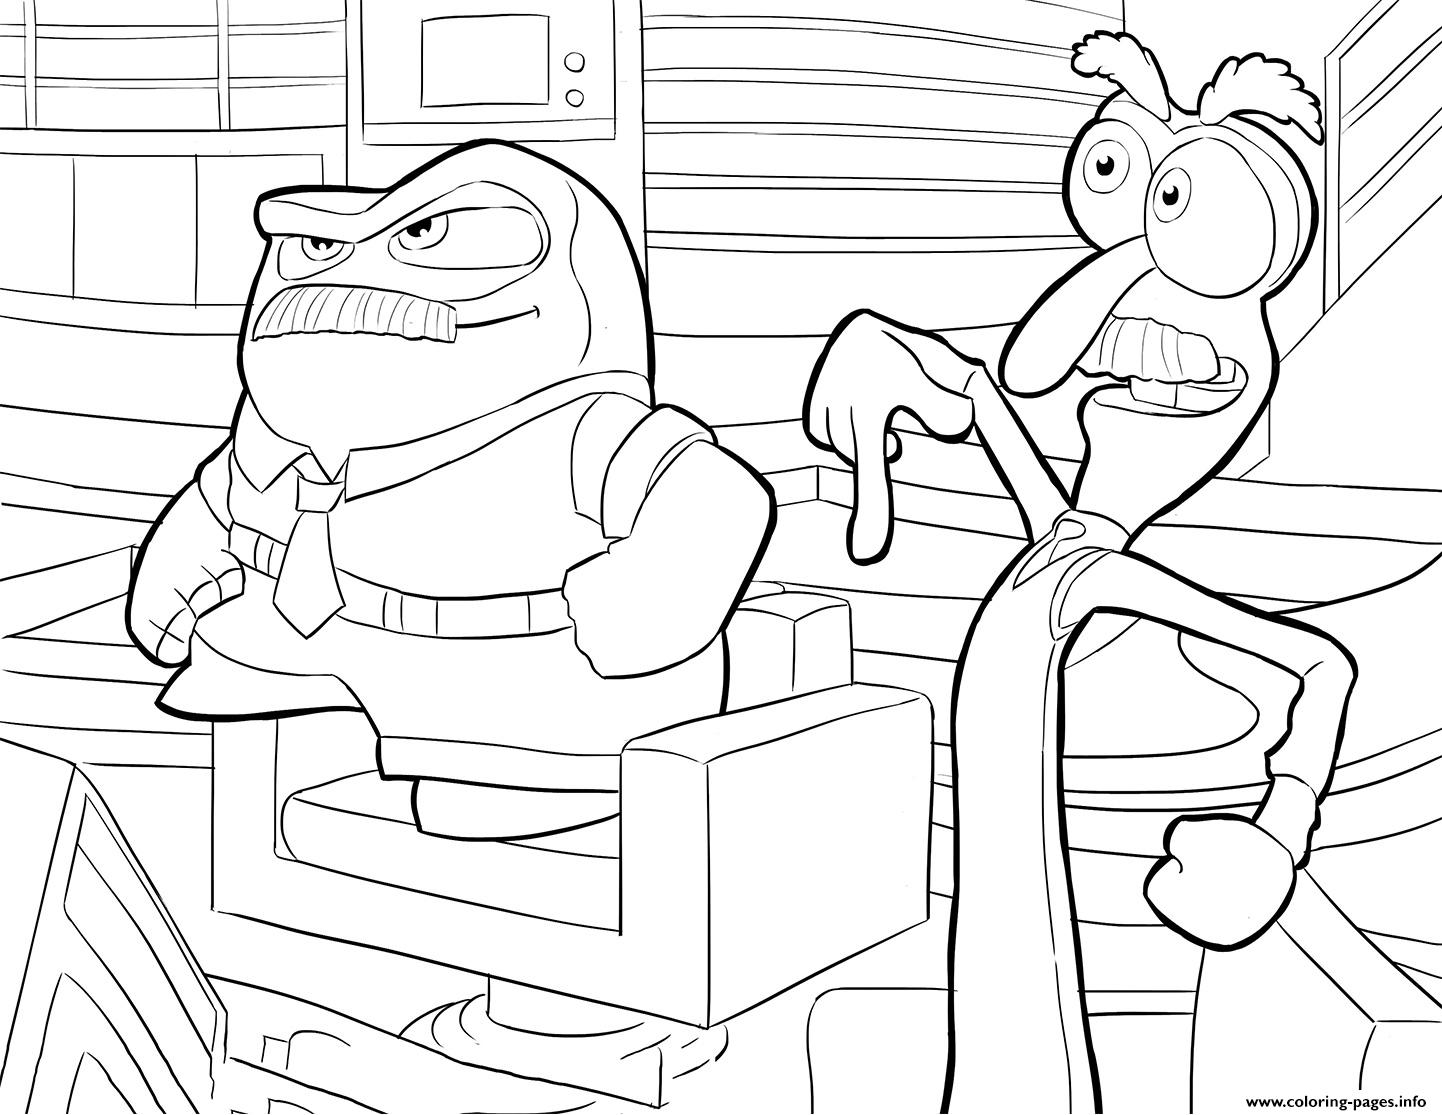 1442x1115 Anger And Fear Inside Out Coloring Pages Printable